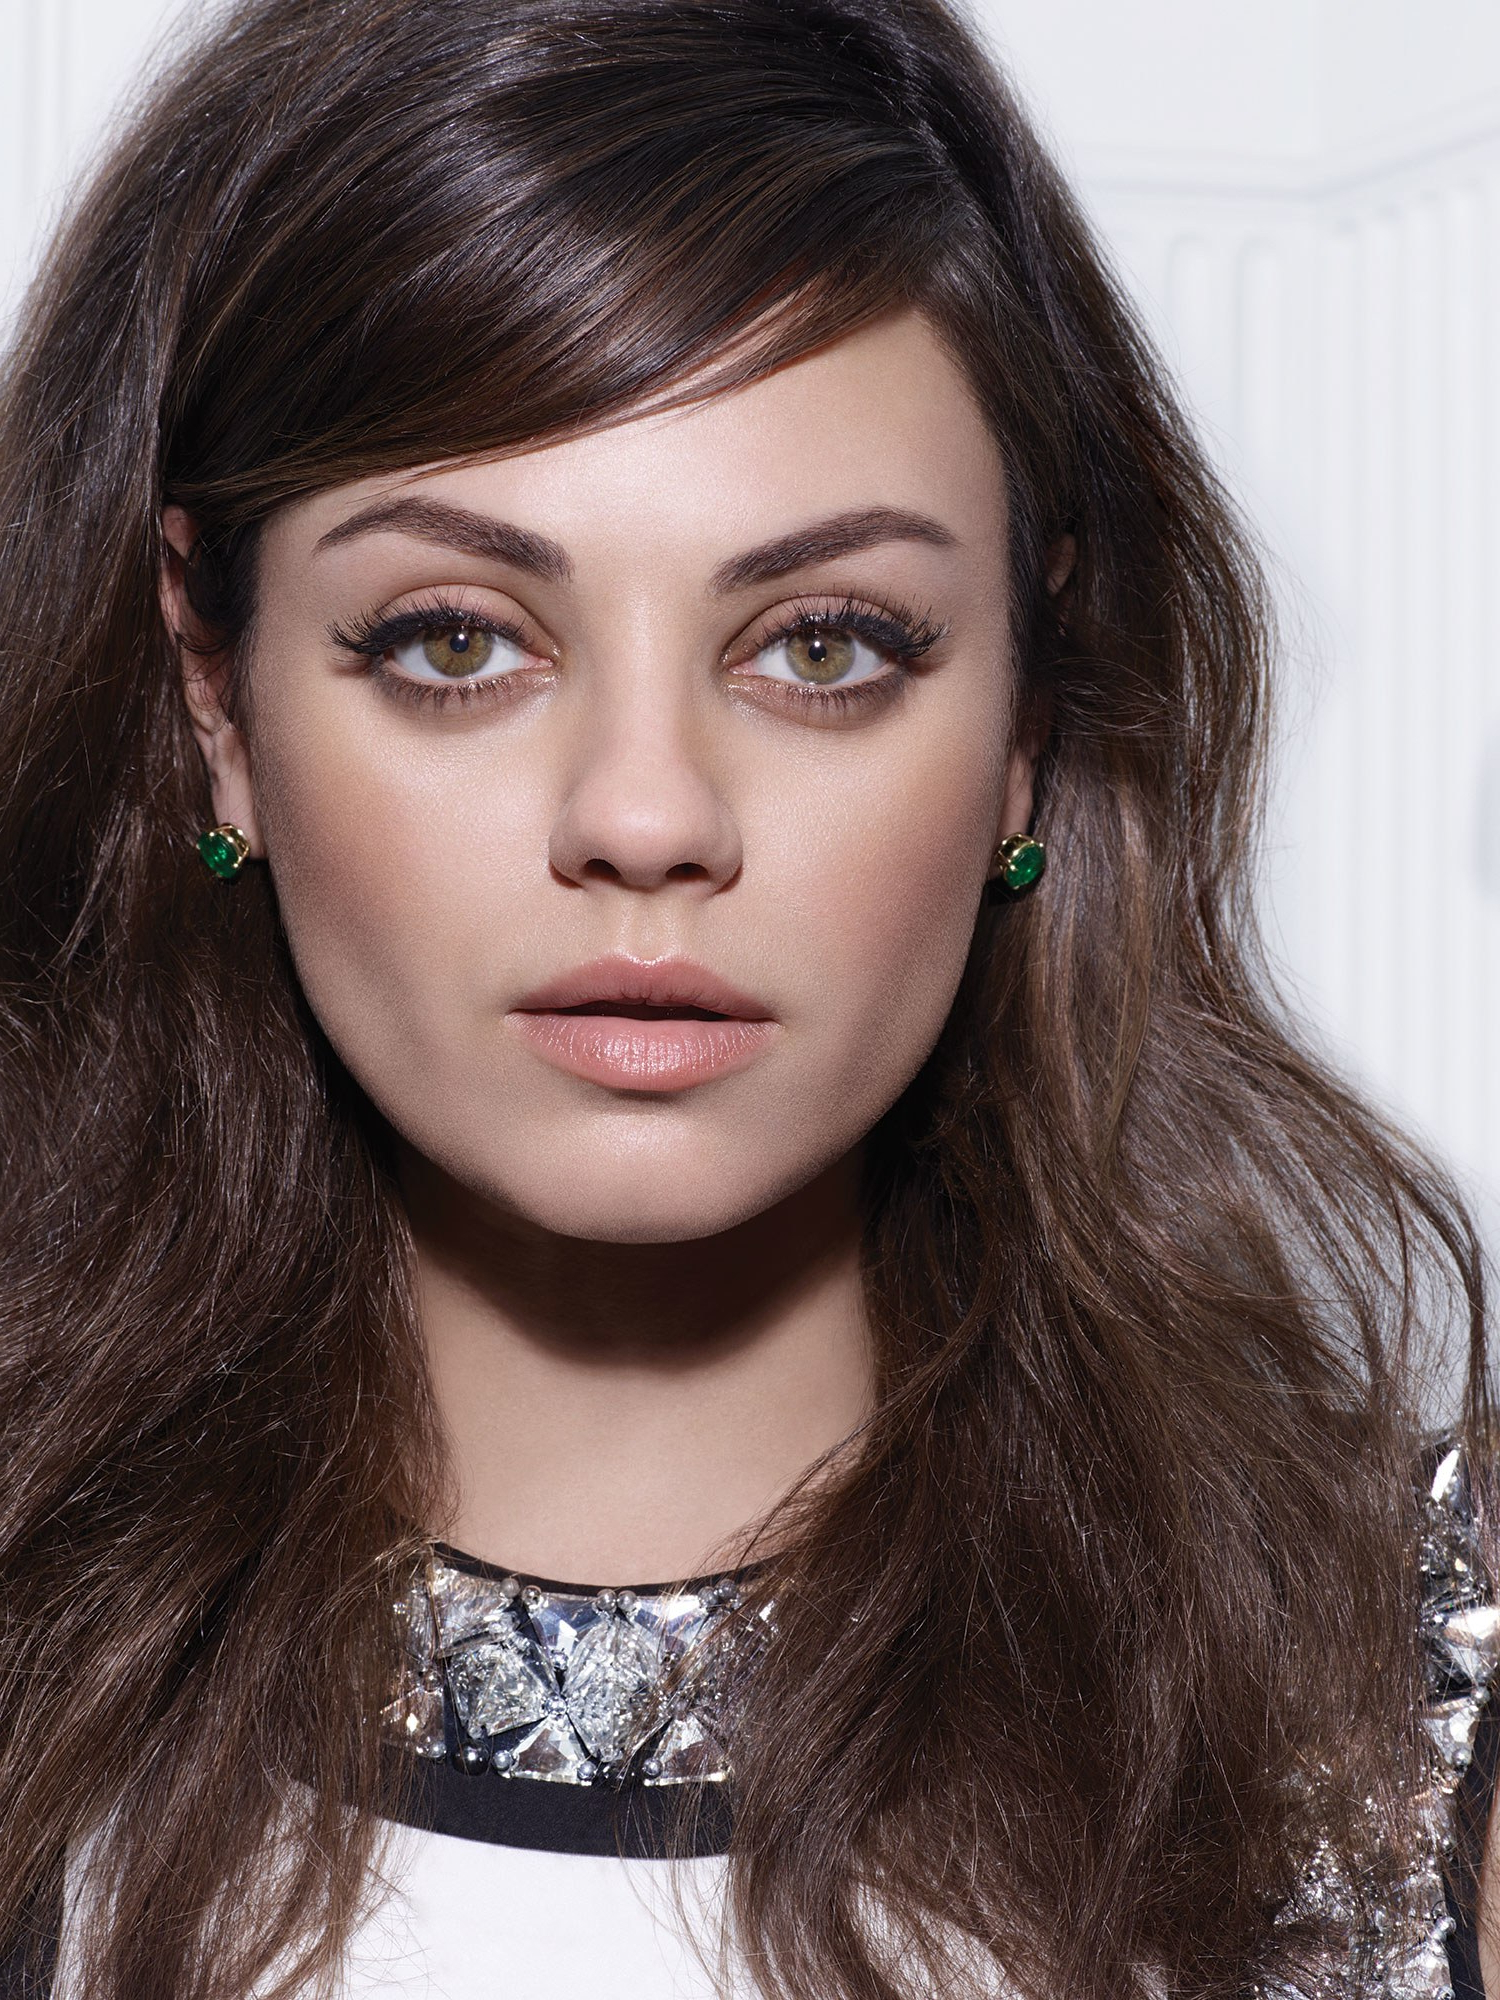 Mila Kunis Just Stepped Out With The Haircut Of The Season: A Short Intended For Mila Kunis Short Hairstyles (View 15 of 25)